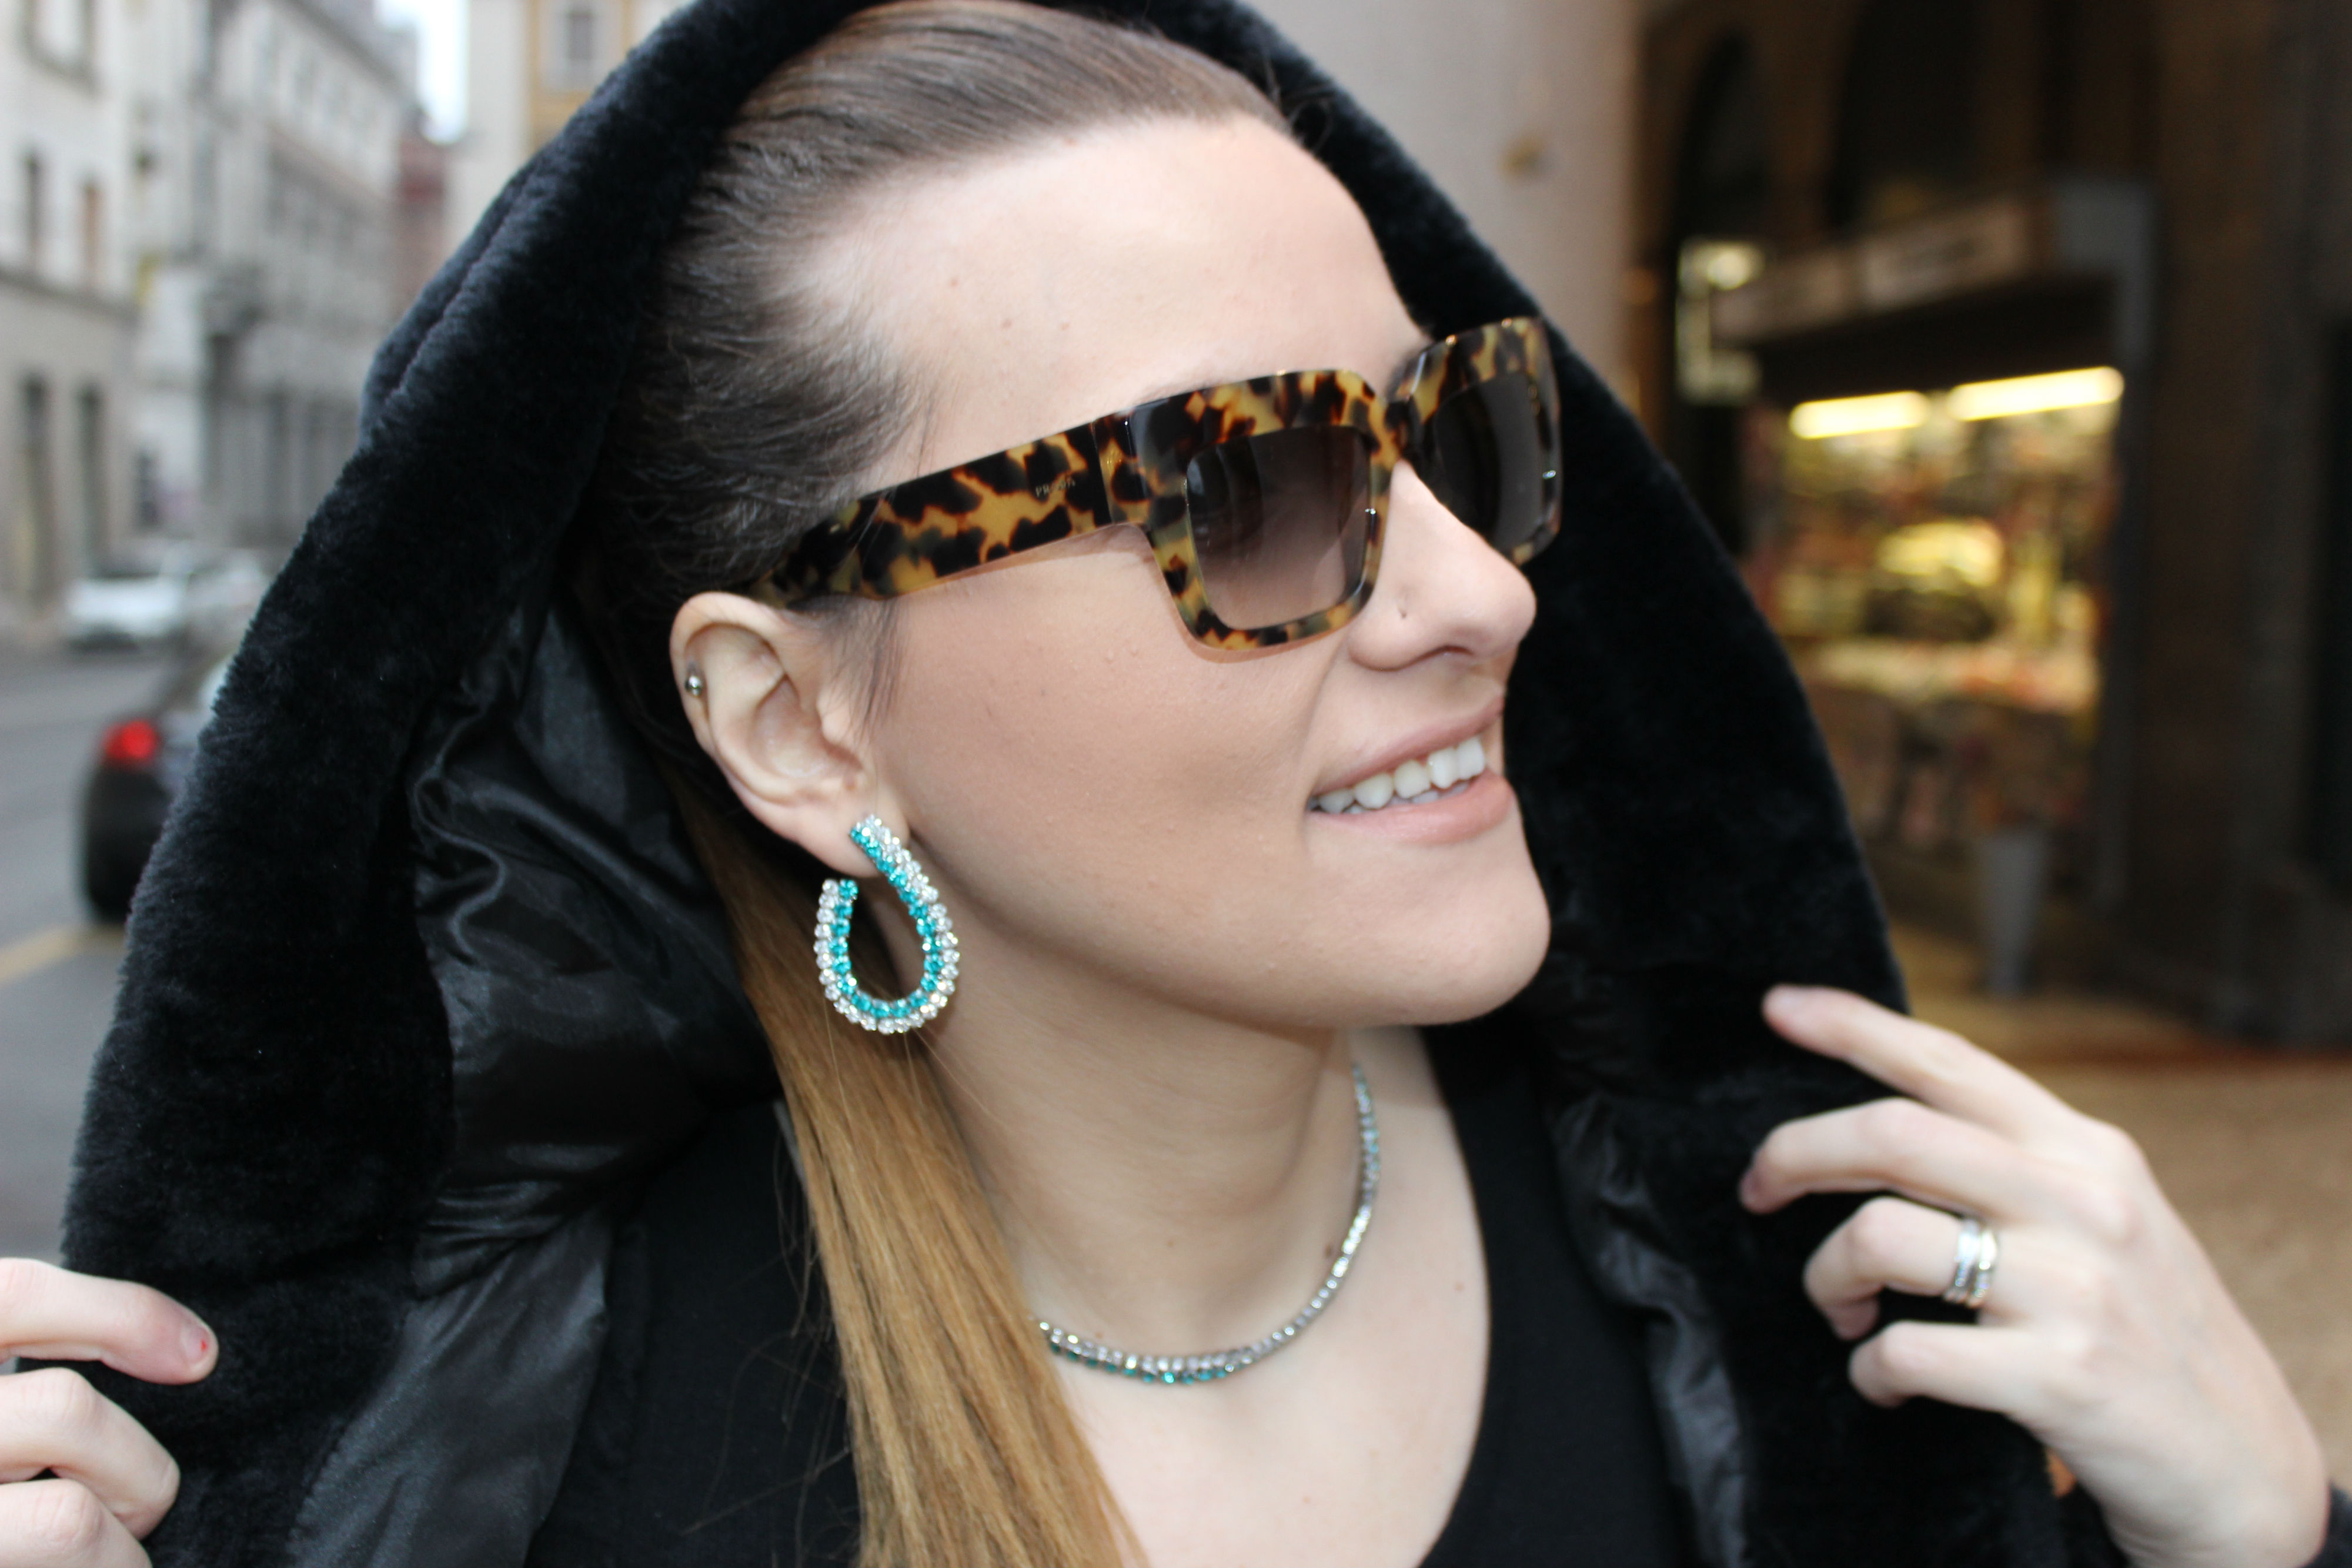 LEPANDORINE-bag-cheap-furcoat-prada-sunglasses8